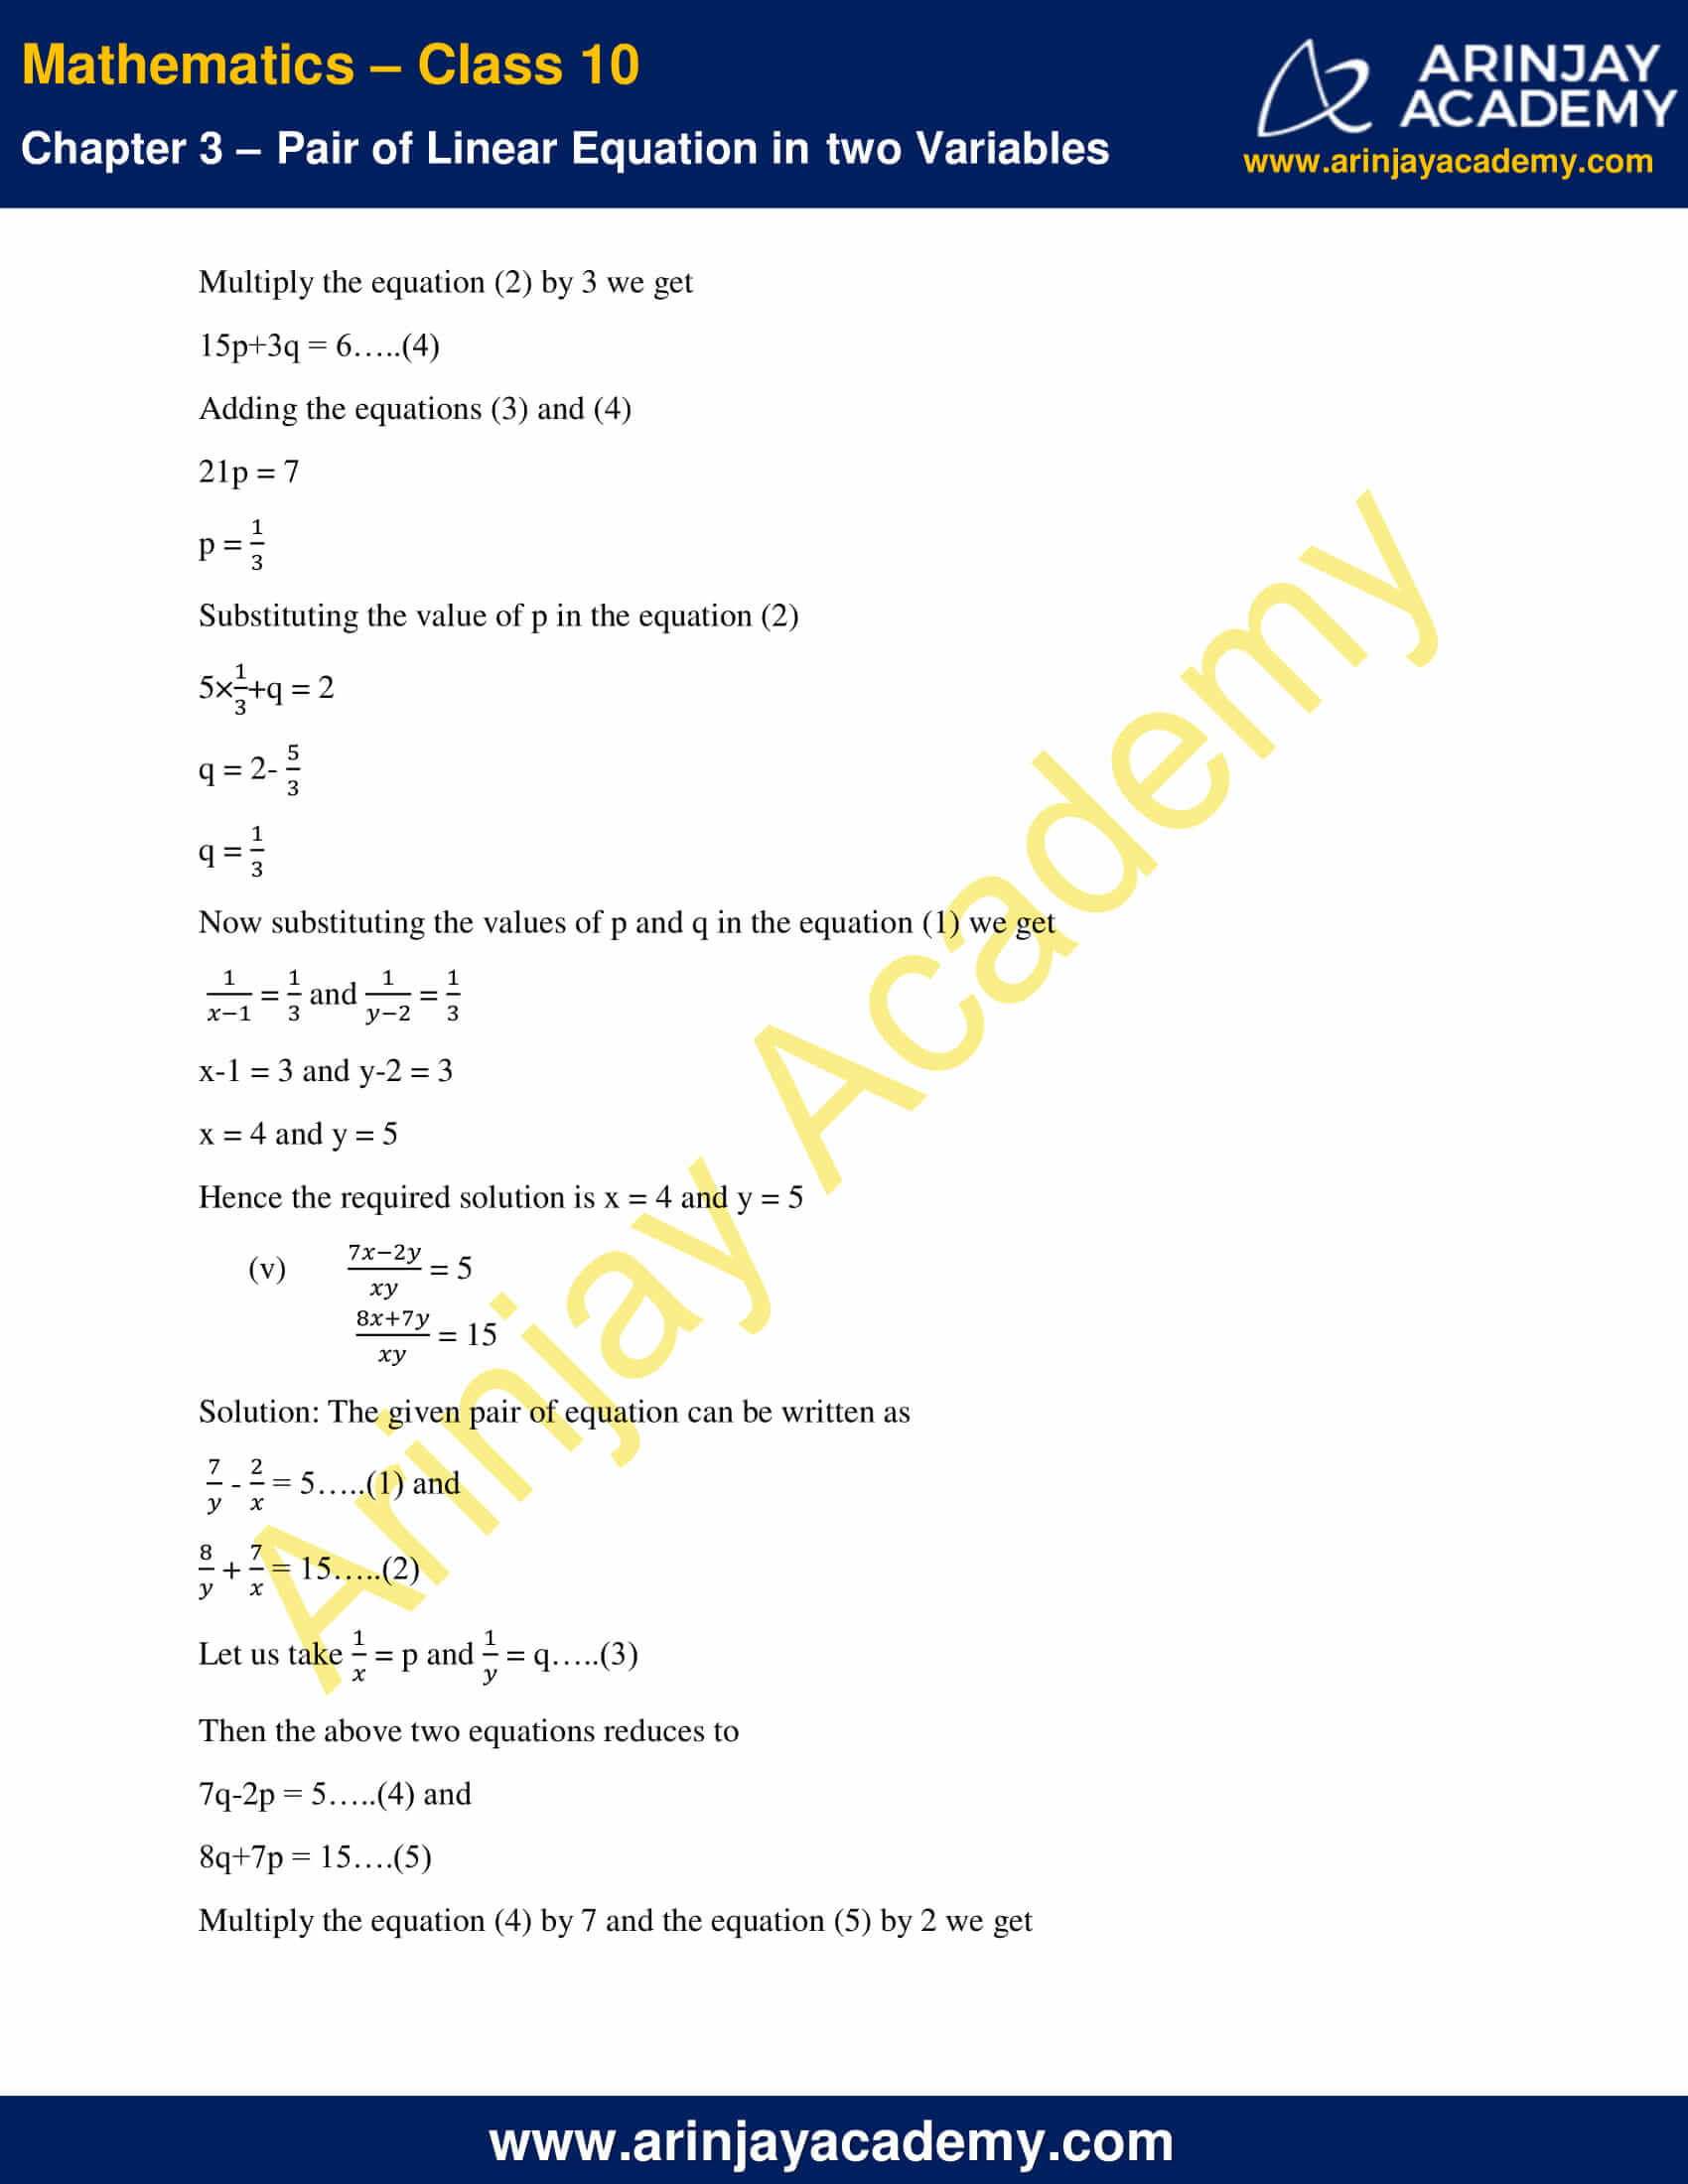 NCERT Solutions For Class 10 Maths Chapter 3 Exercise 3.6 image 4